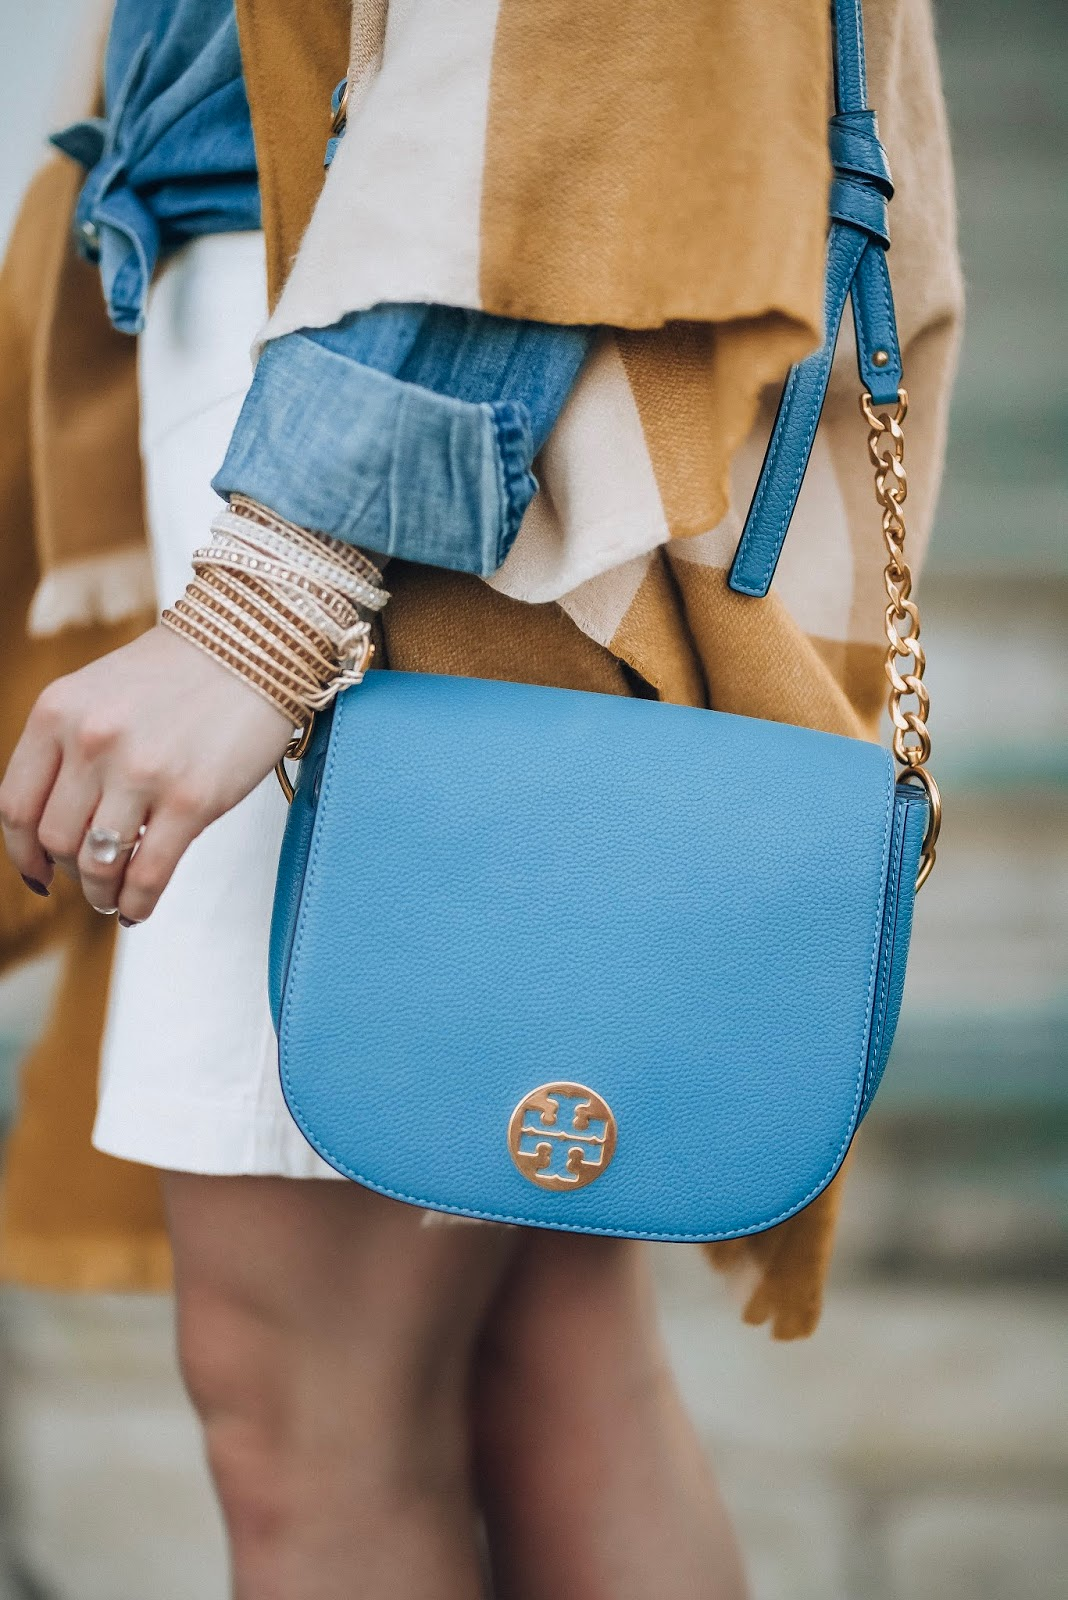 Target Style: Neutrals For Fall - Neutral Fall Look Tory Burch Bag - Something Delightful Blog #fallstyle #targetstyle